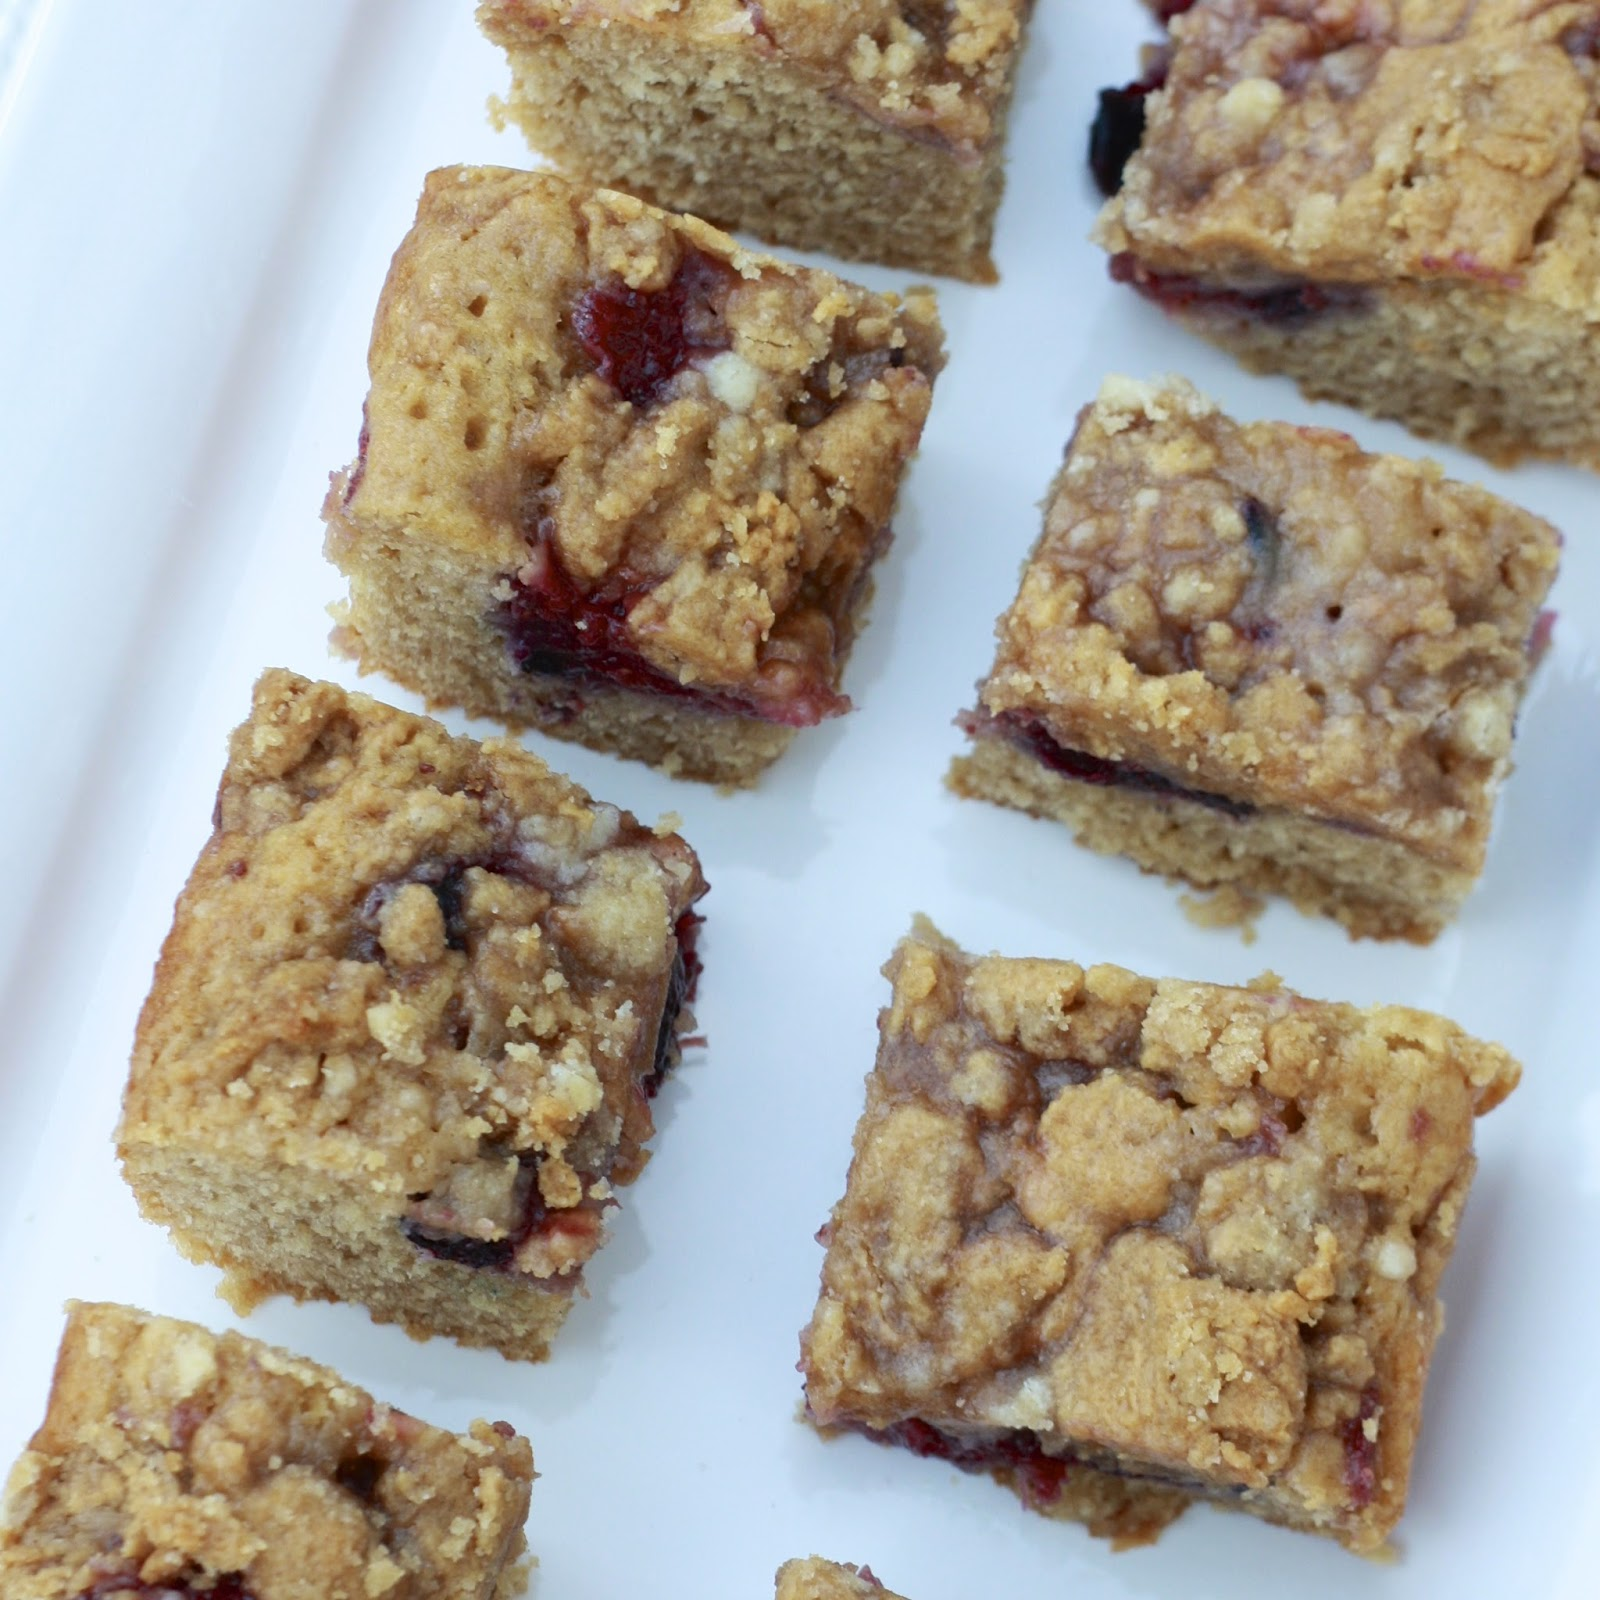 Peanut Butter and Jelly Coffee Cake | The Sweets Life